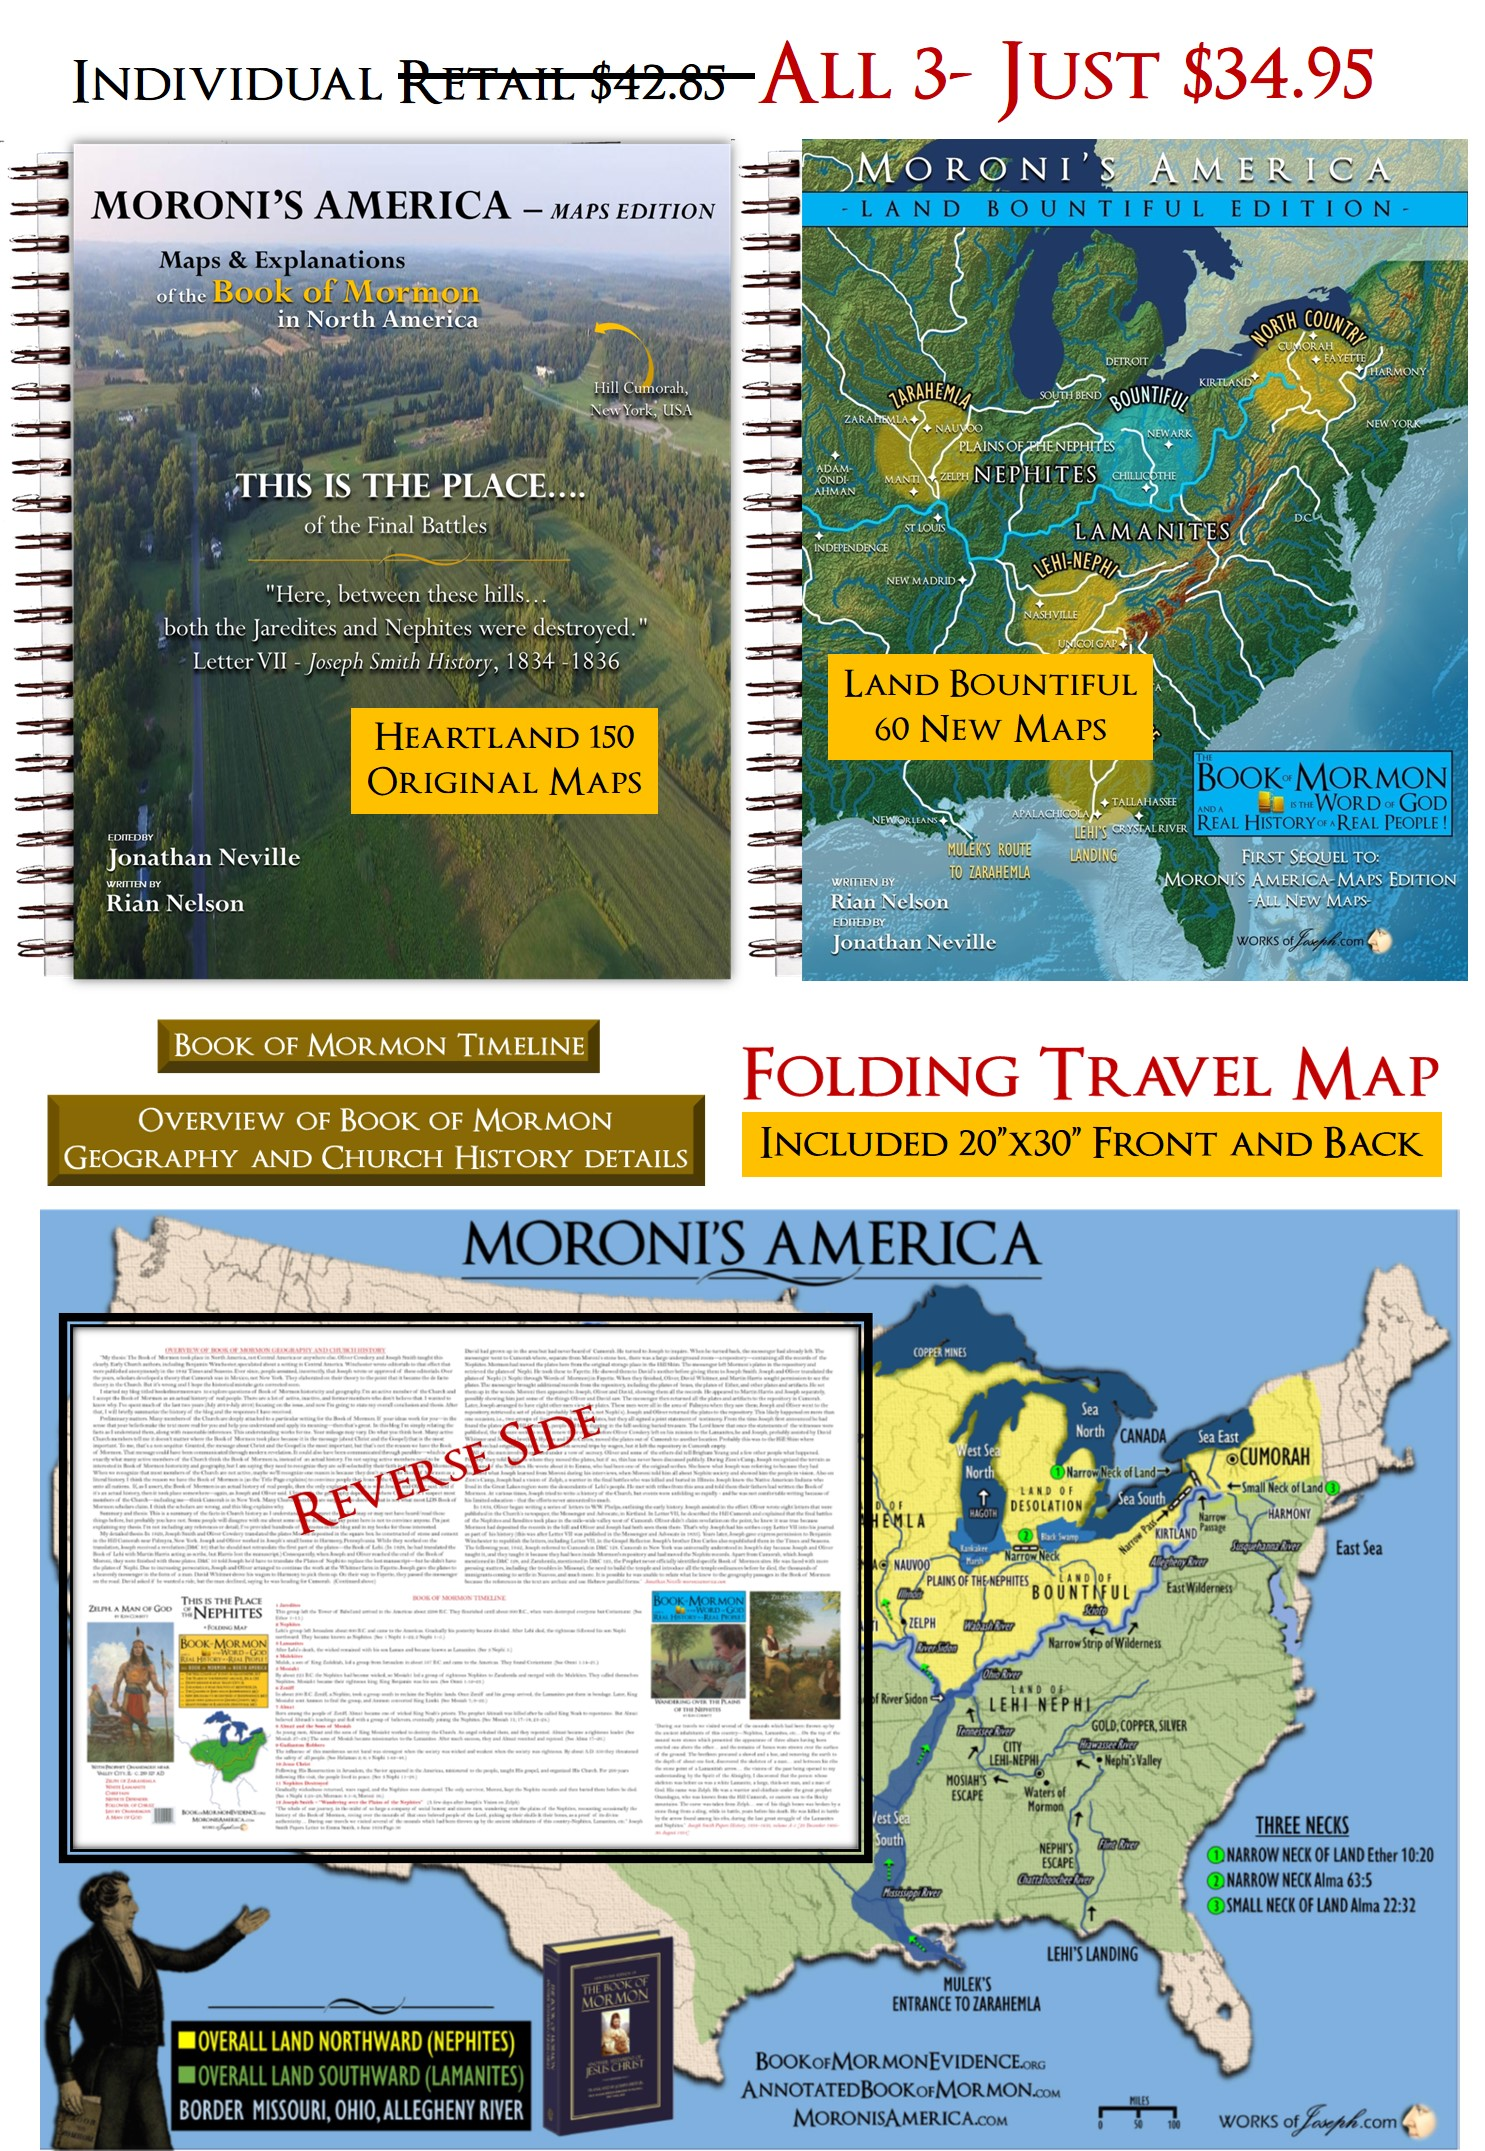 Heartland Florida Map.Moroni S America Heartland Map Package Both Map Book S Travel Map